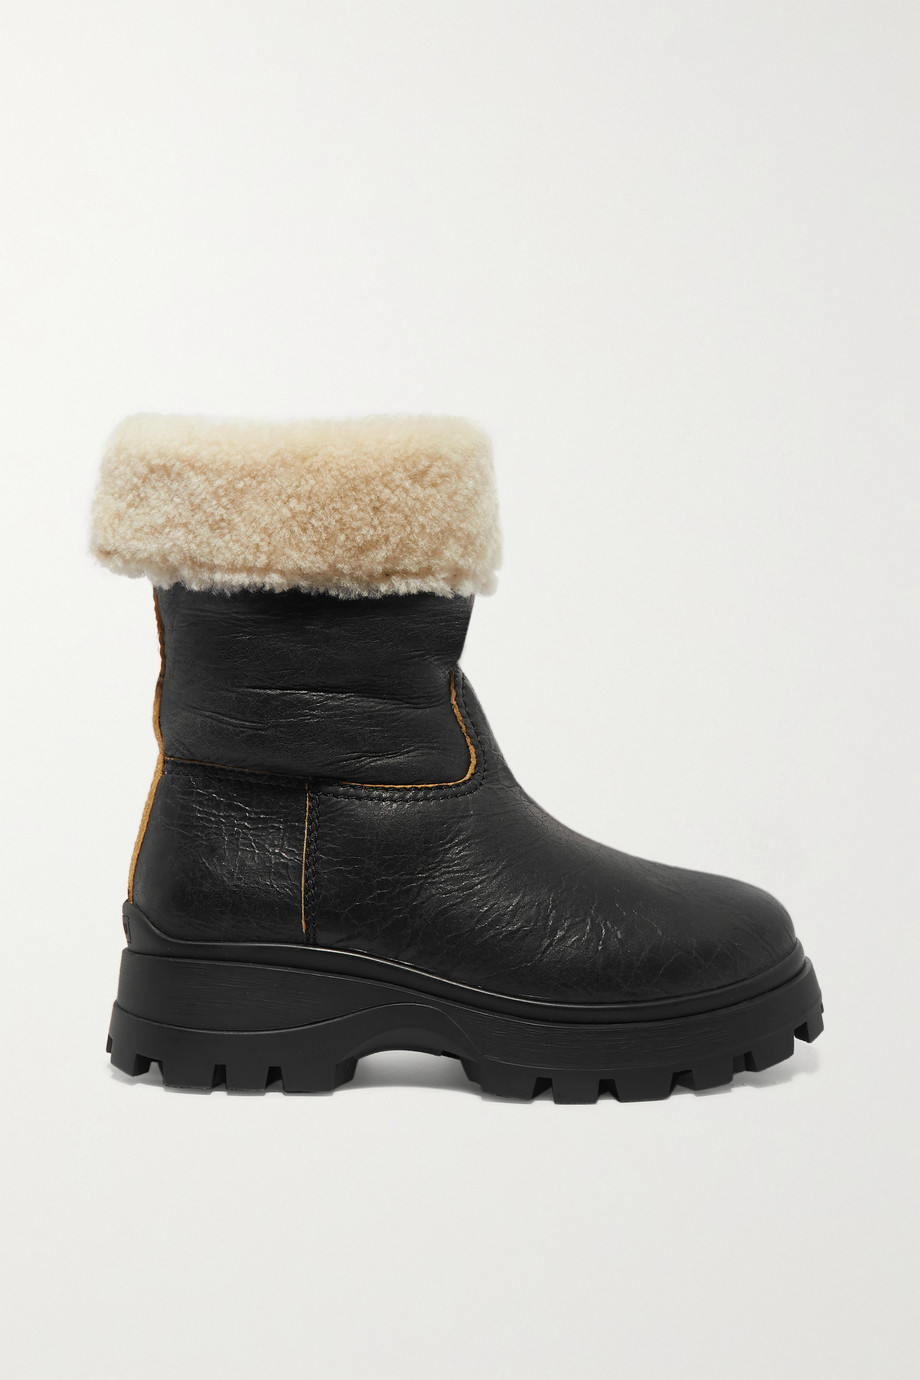 Miu Miu Shearling-lined cracked-leather ankle boots